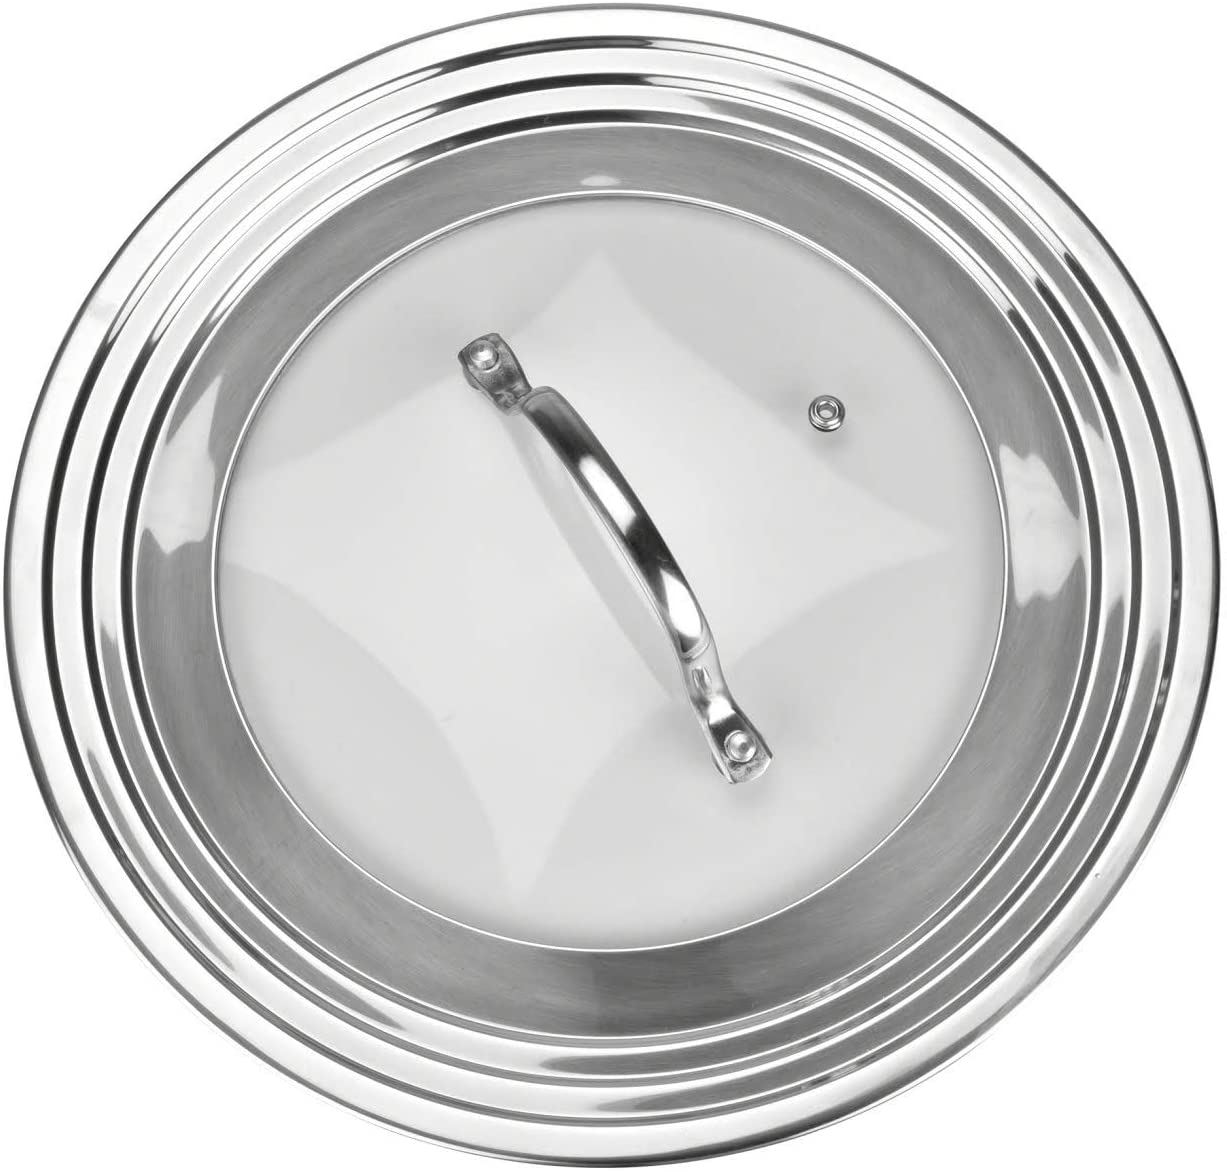 Stainless Steel Universal Lid for Pots, Pans and Skillets - Fits 7 In to 12 In Pots and Pans - Replacement Frying Pan Cover and Cast Iron Skillet Lid : Home & Kitchen